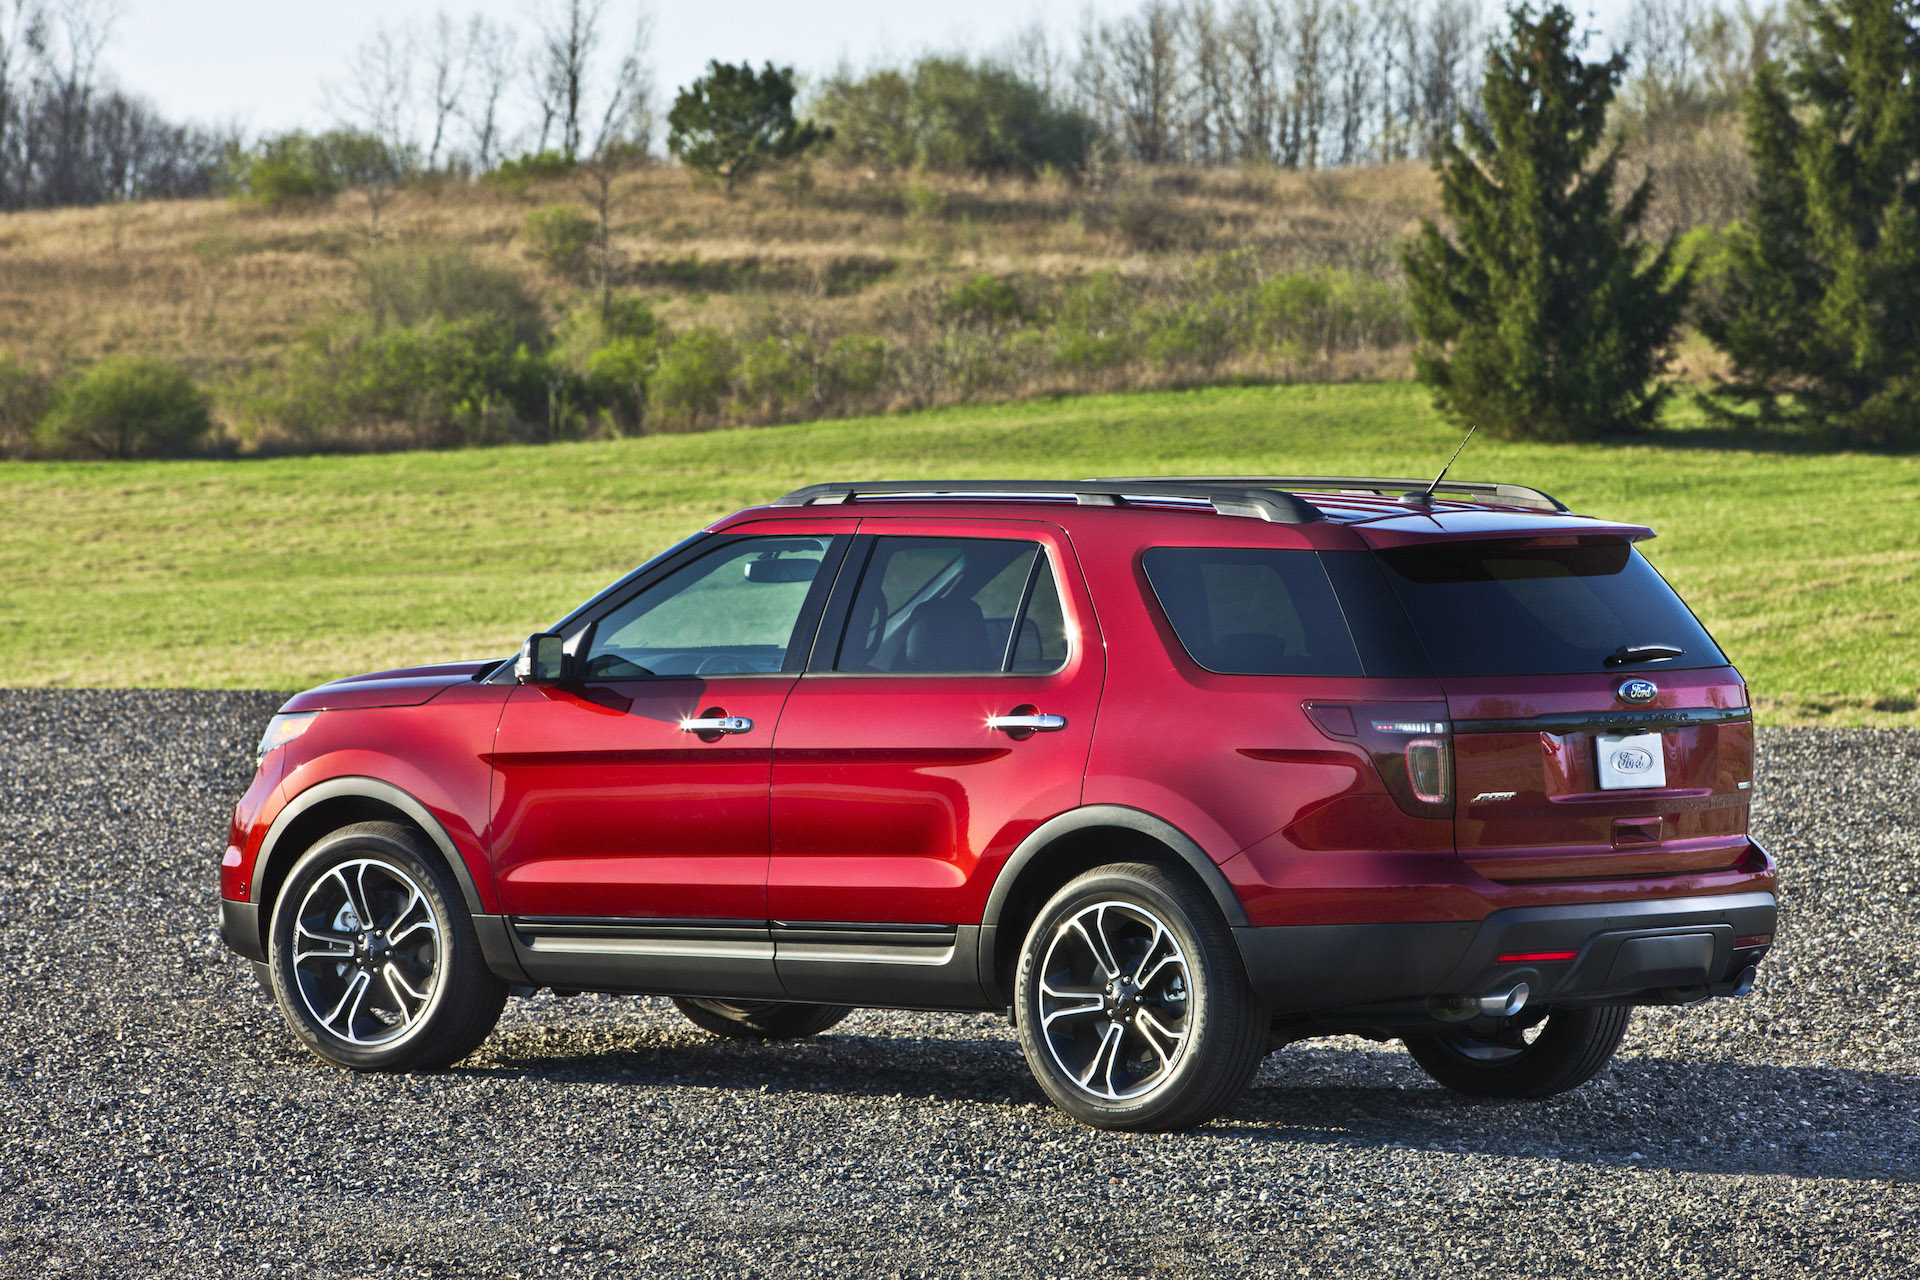 2015 Ford Explorer Review, Ratings, Specs, Prices, And